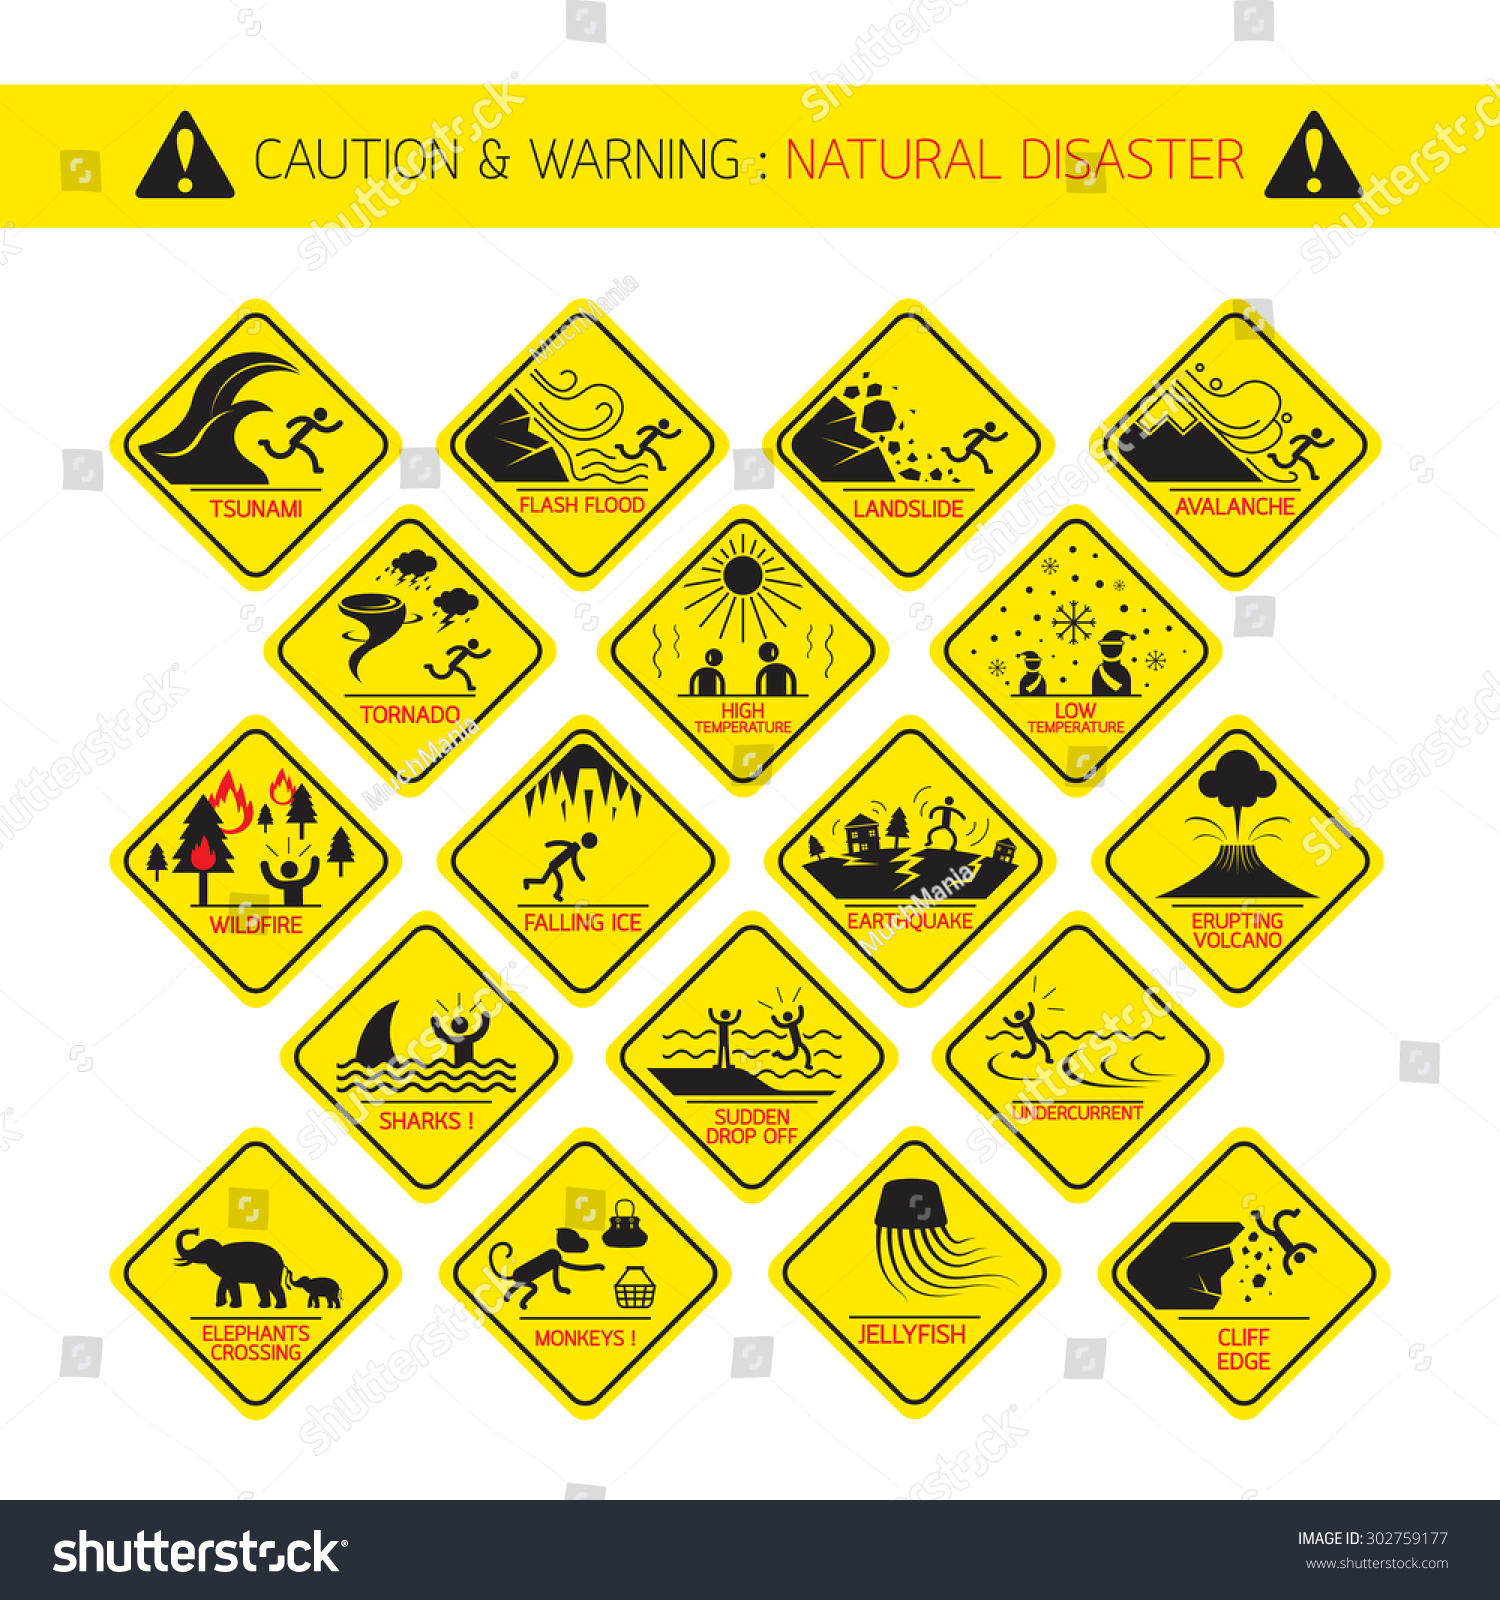 Natural Disaster Warning Signs Caution Danger Stock Vector